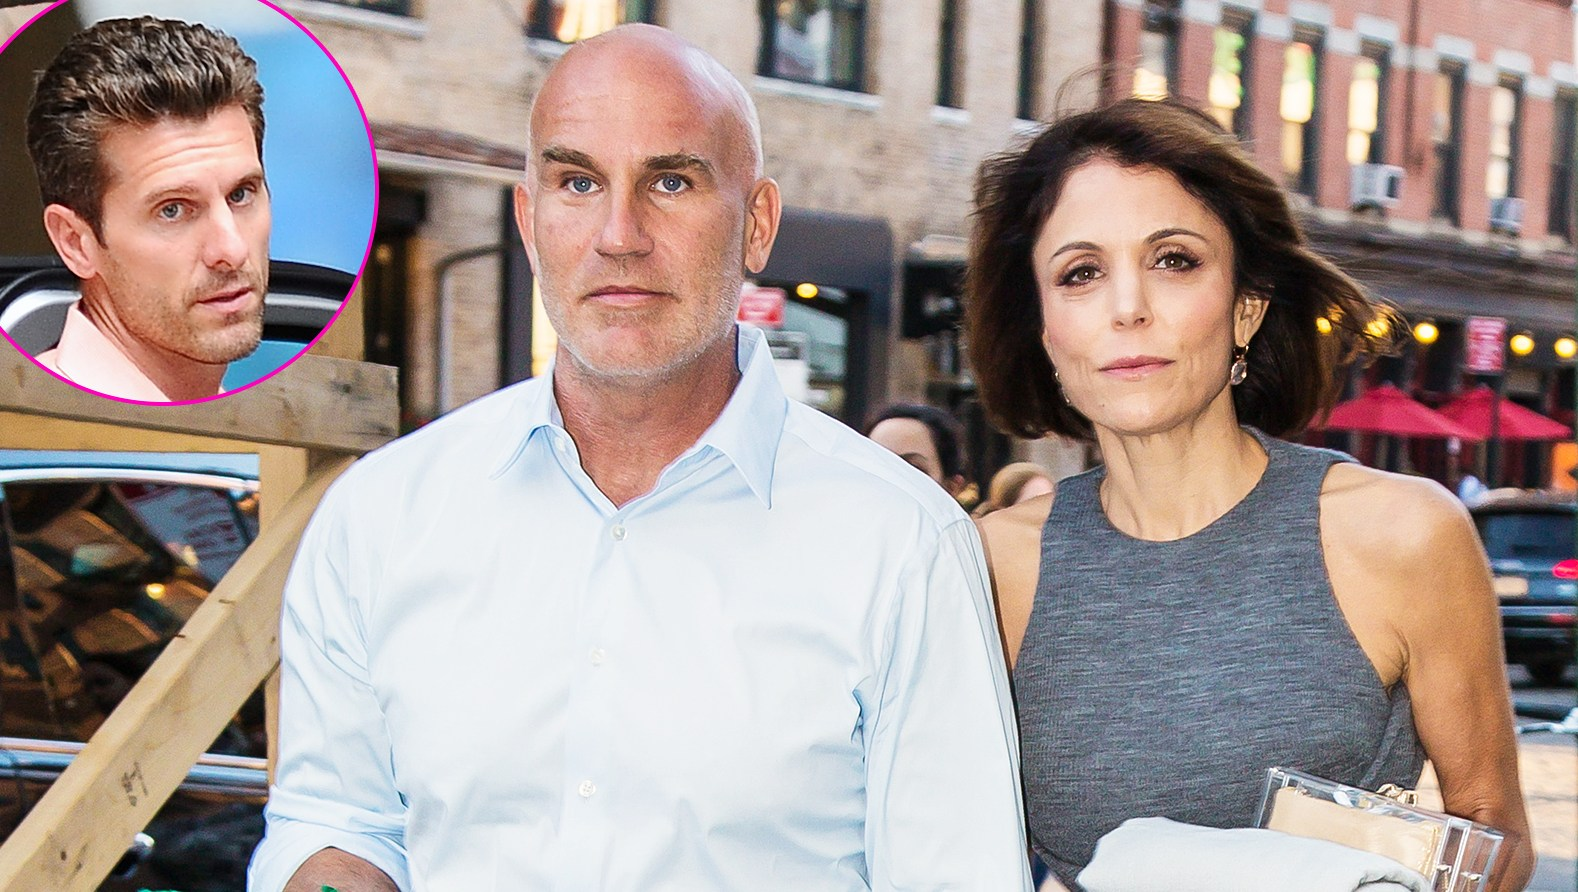 Jason Hoppy Concerned Parental Judgement Bethenny Frankel Dennis Shields Death